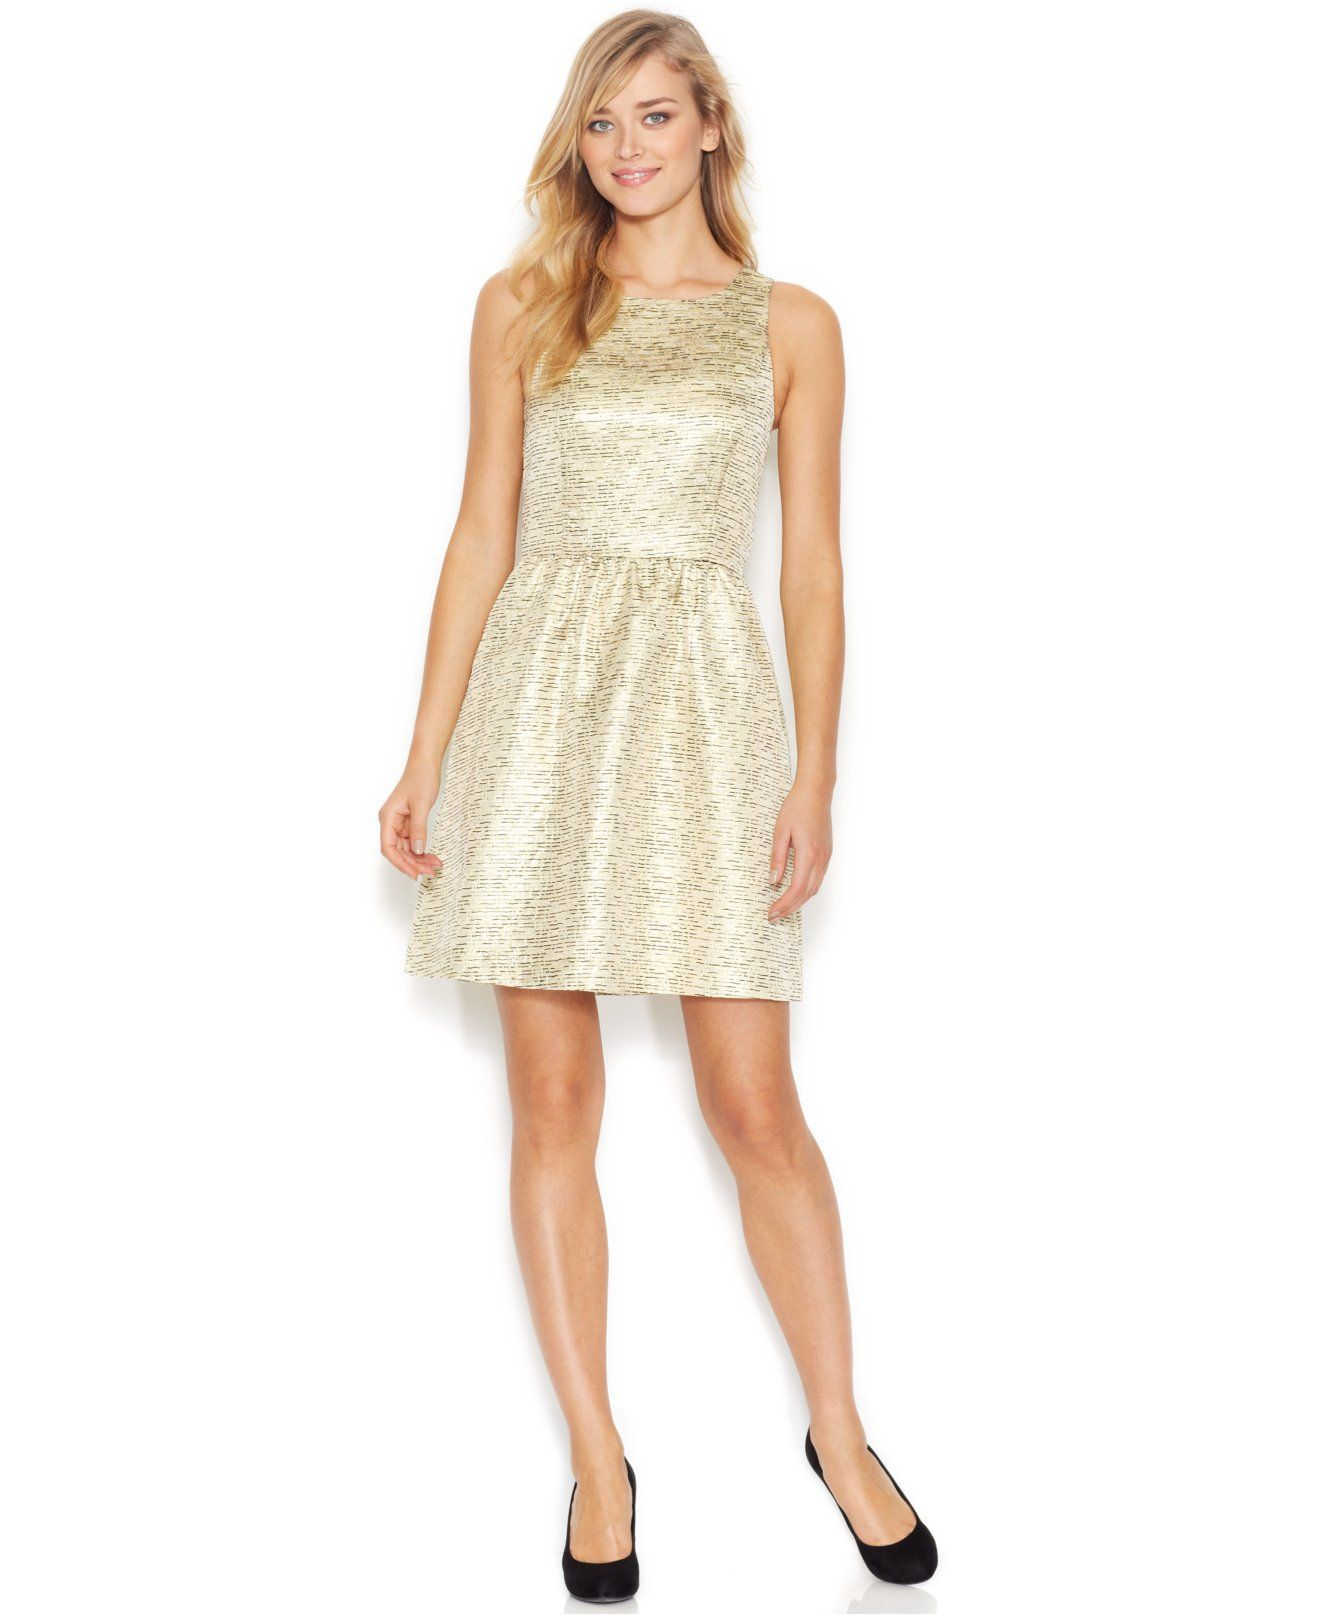 Macy's party dresses weddings  kensie Sleeveless ScoopNeck FoilPrint Dress Only at Macyus